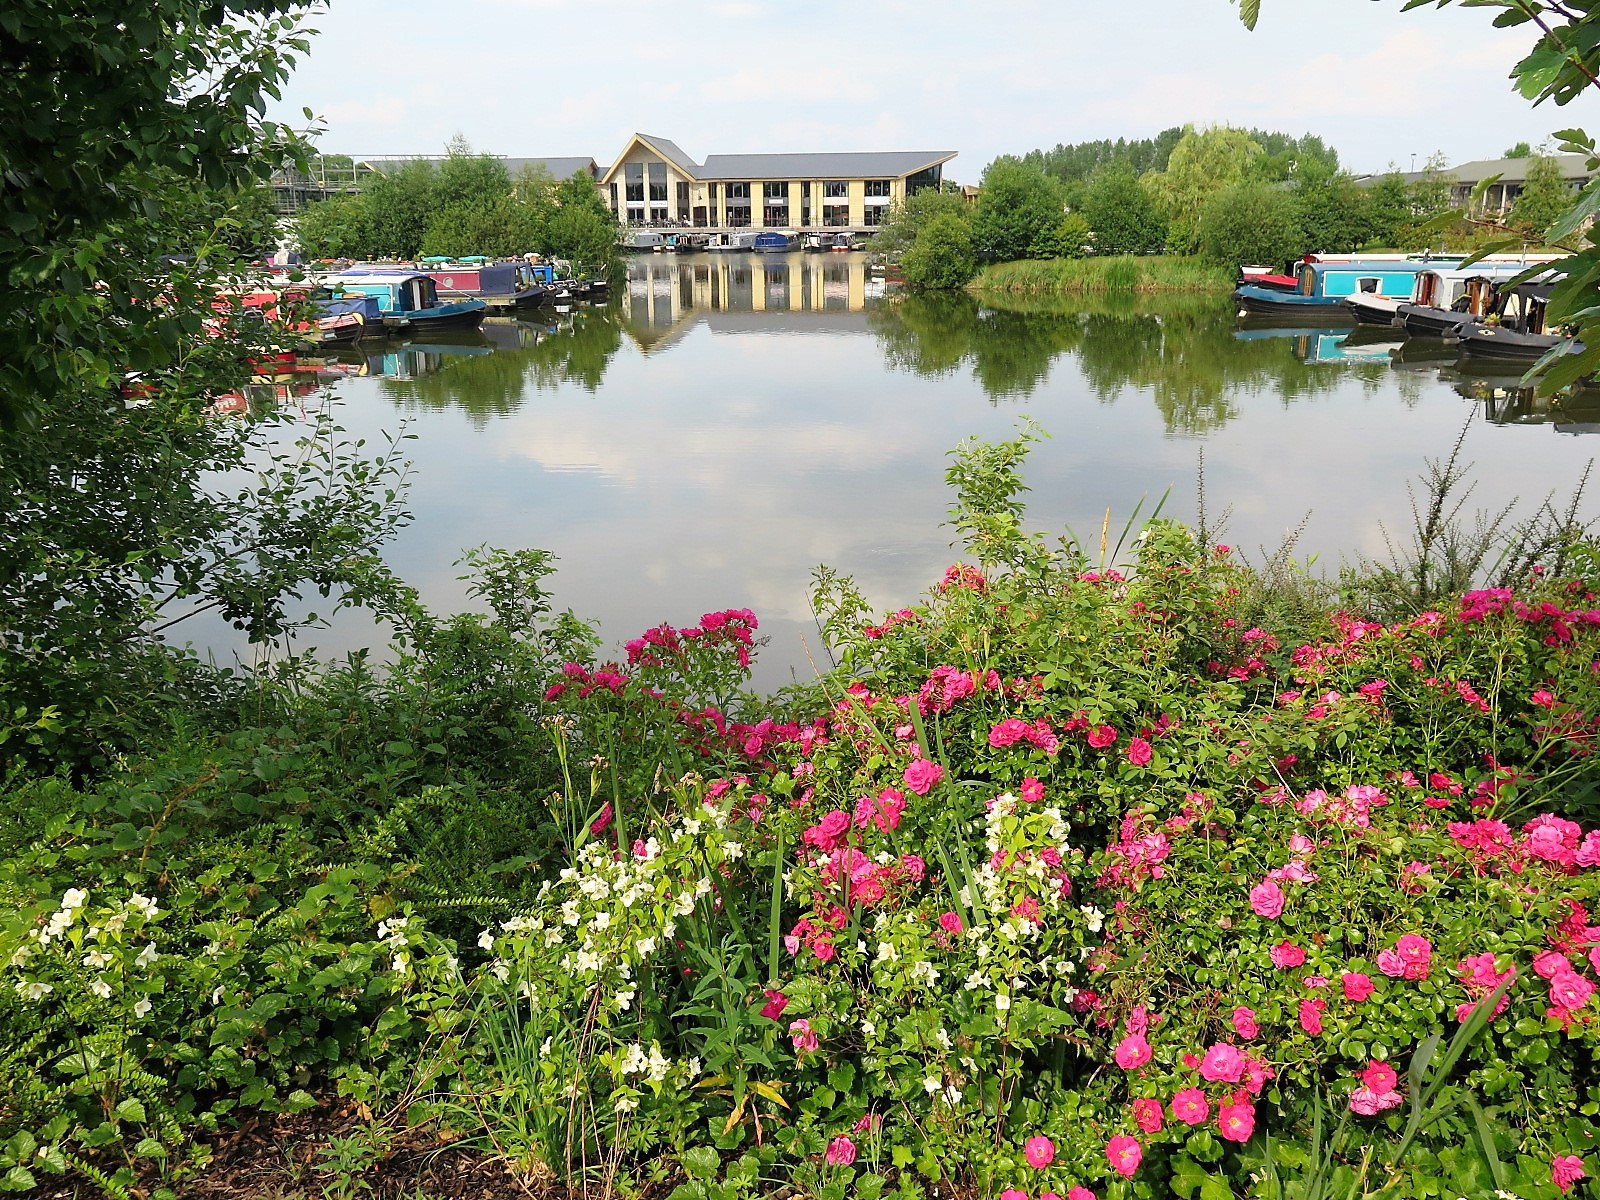 More shops at Mercia Marina reopen as Government eases lockdown restrictions